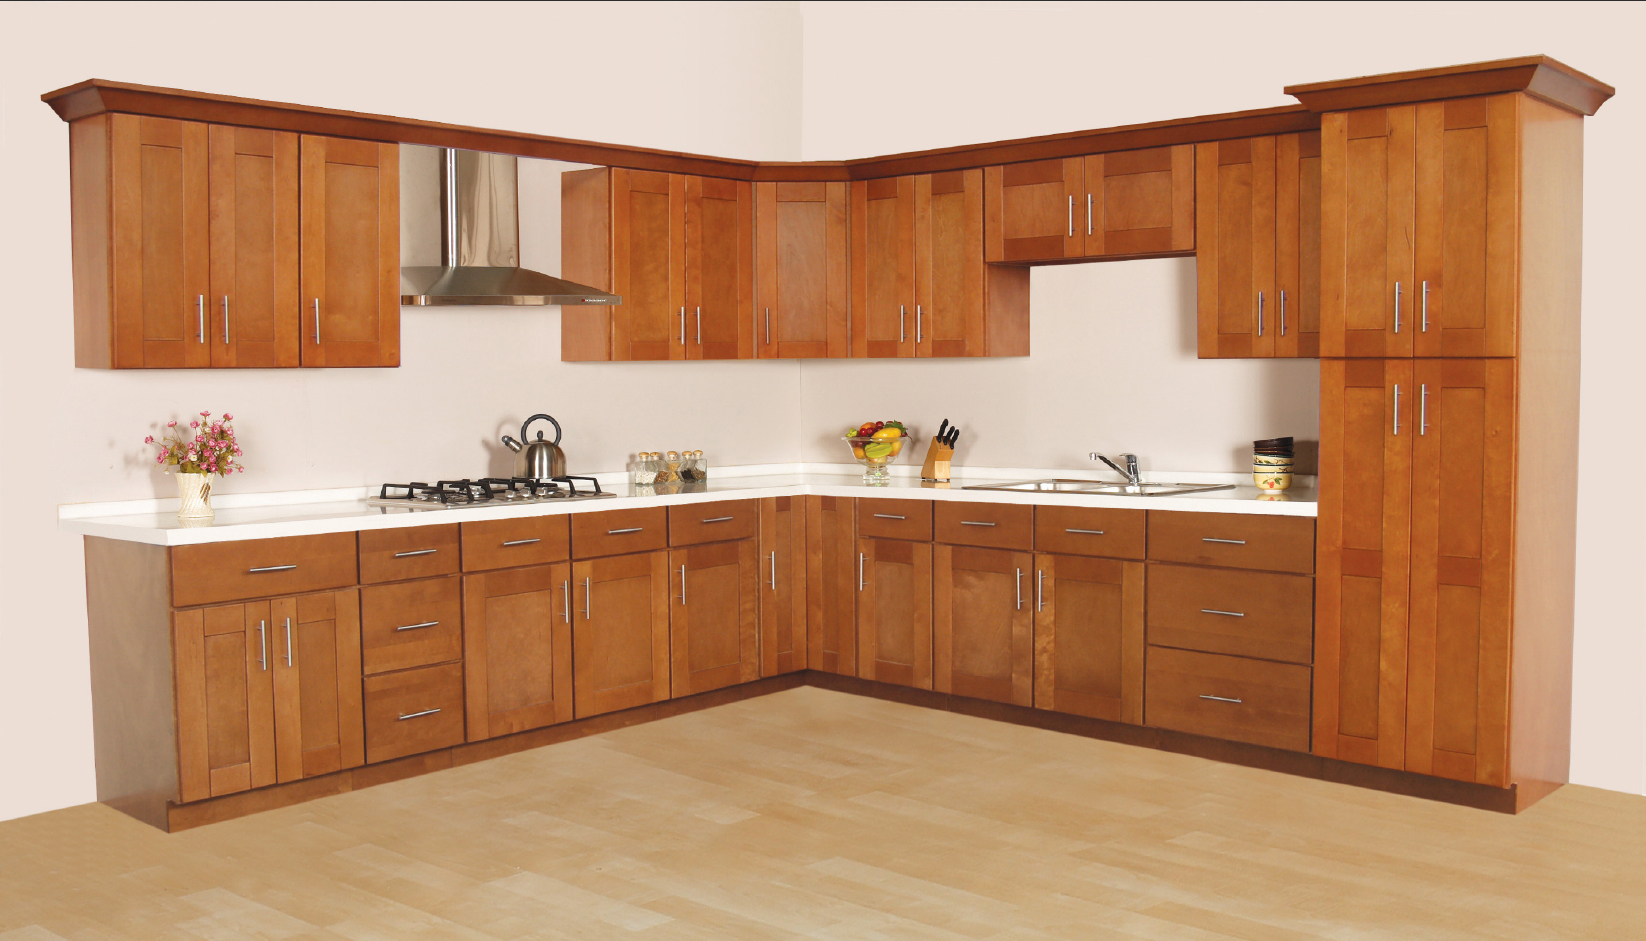 Menards kitchen cabinet price and details home and for New kitchen cabinet designs